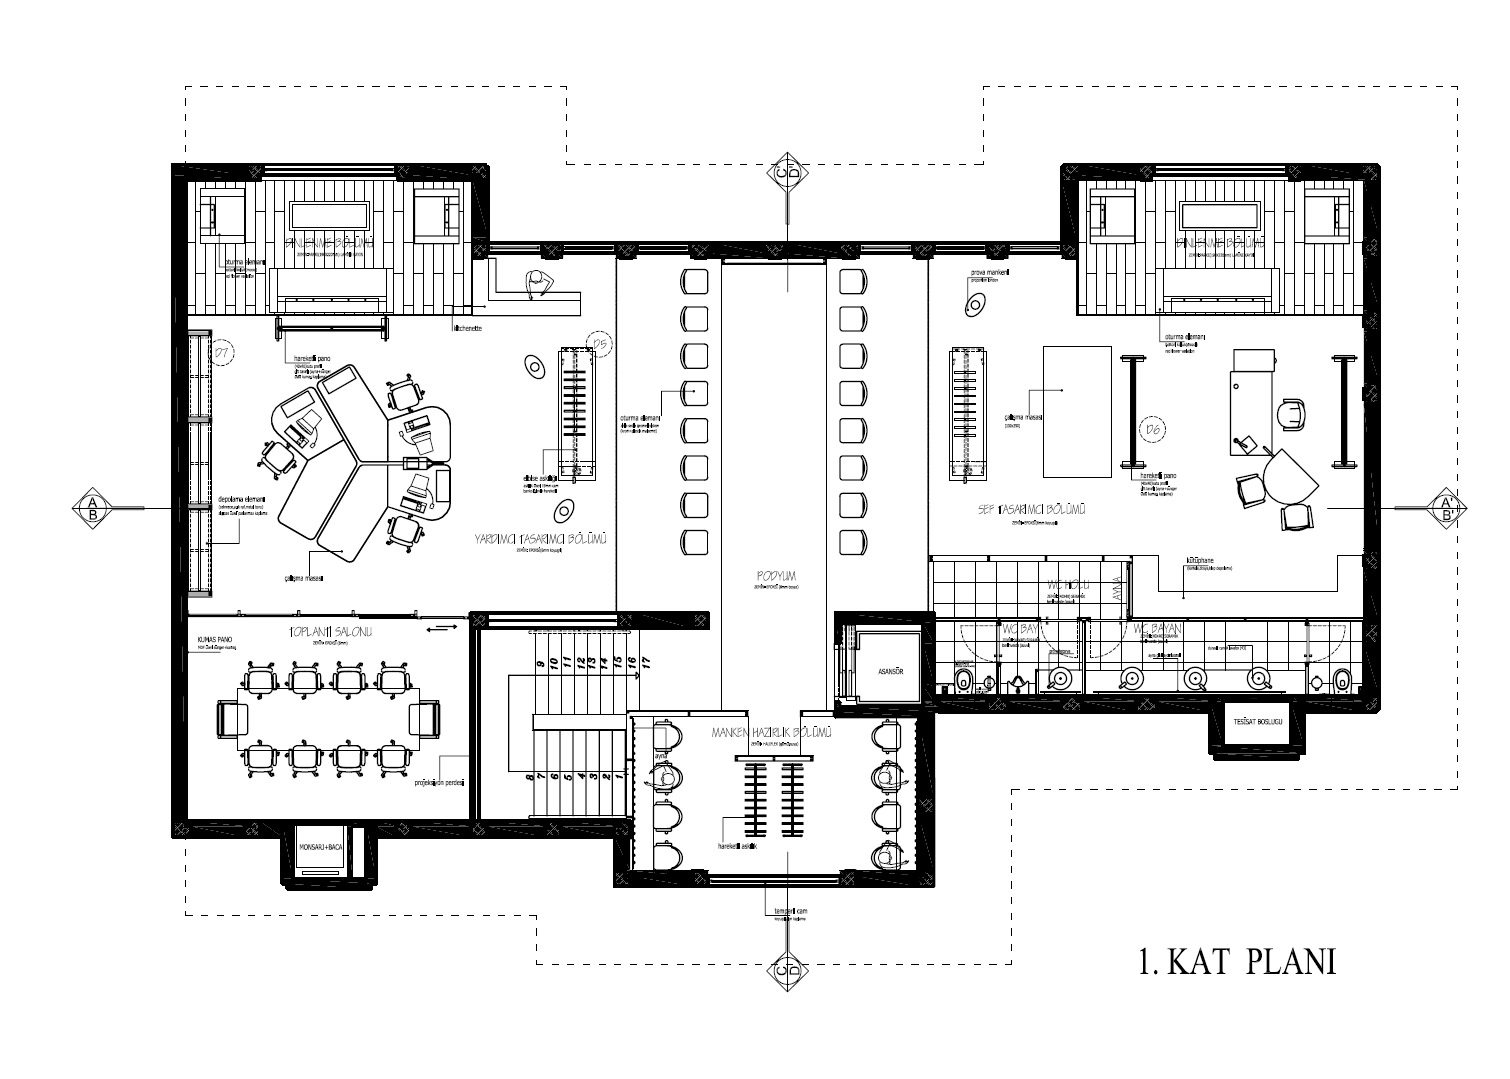 atil kutoglu fashion house istanbul by zeki erturk ural at floor plan of meeting rooms trend home design and decor